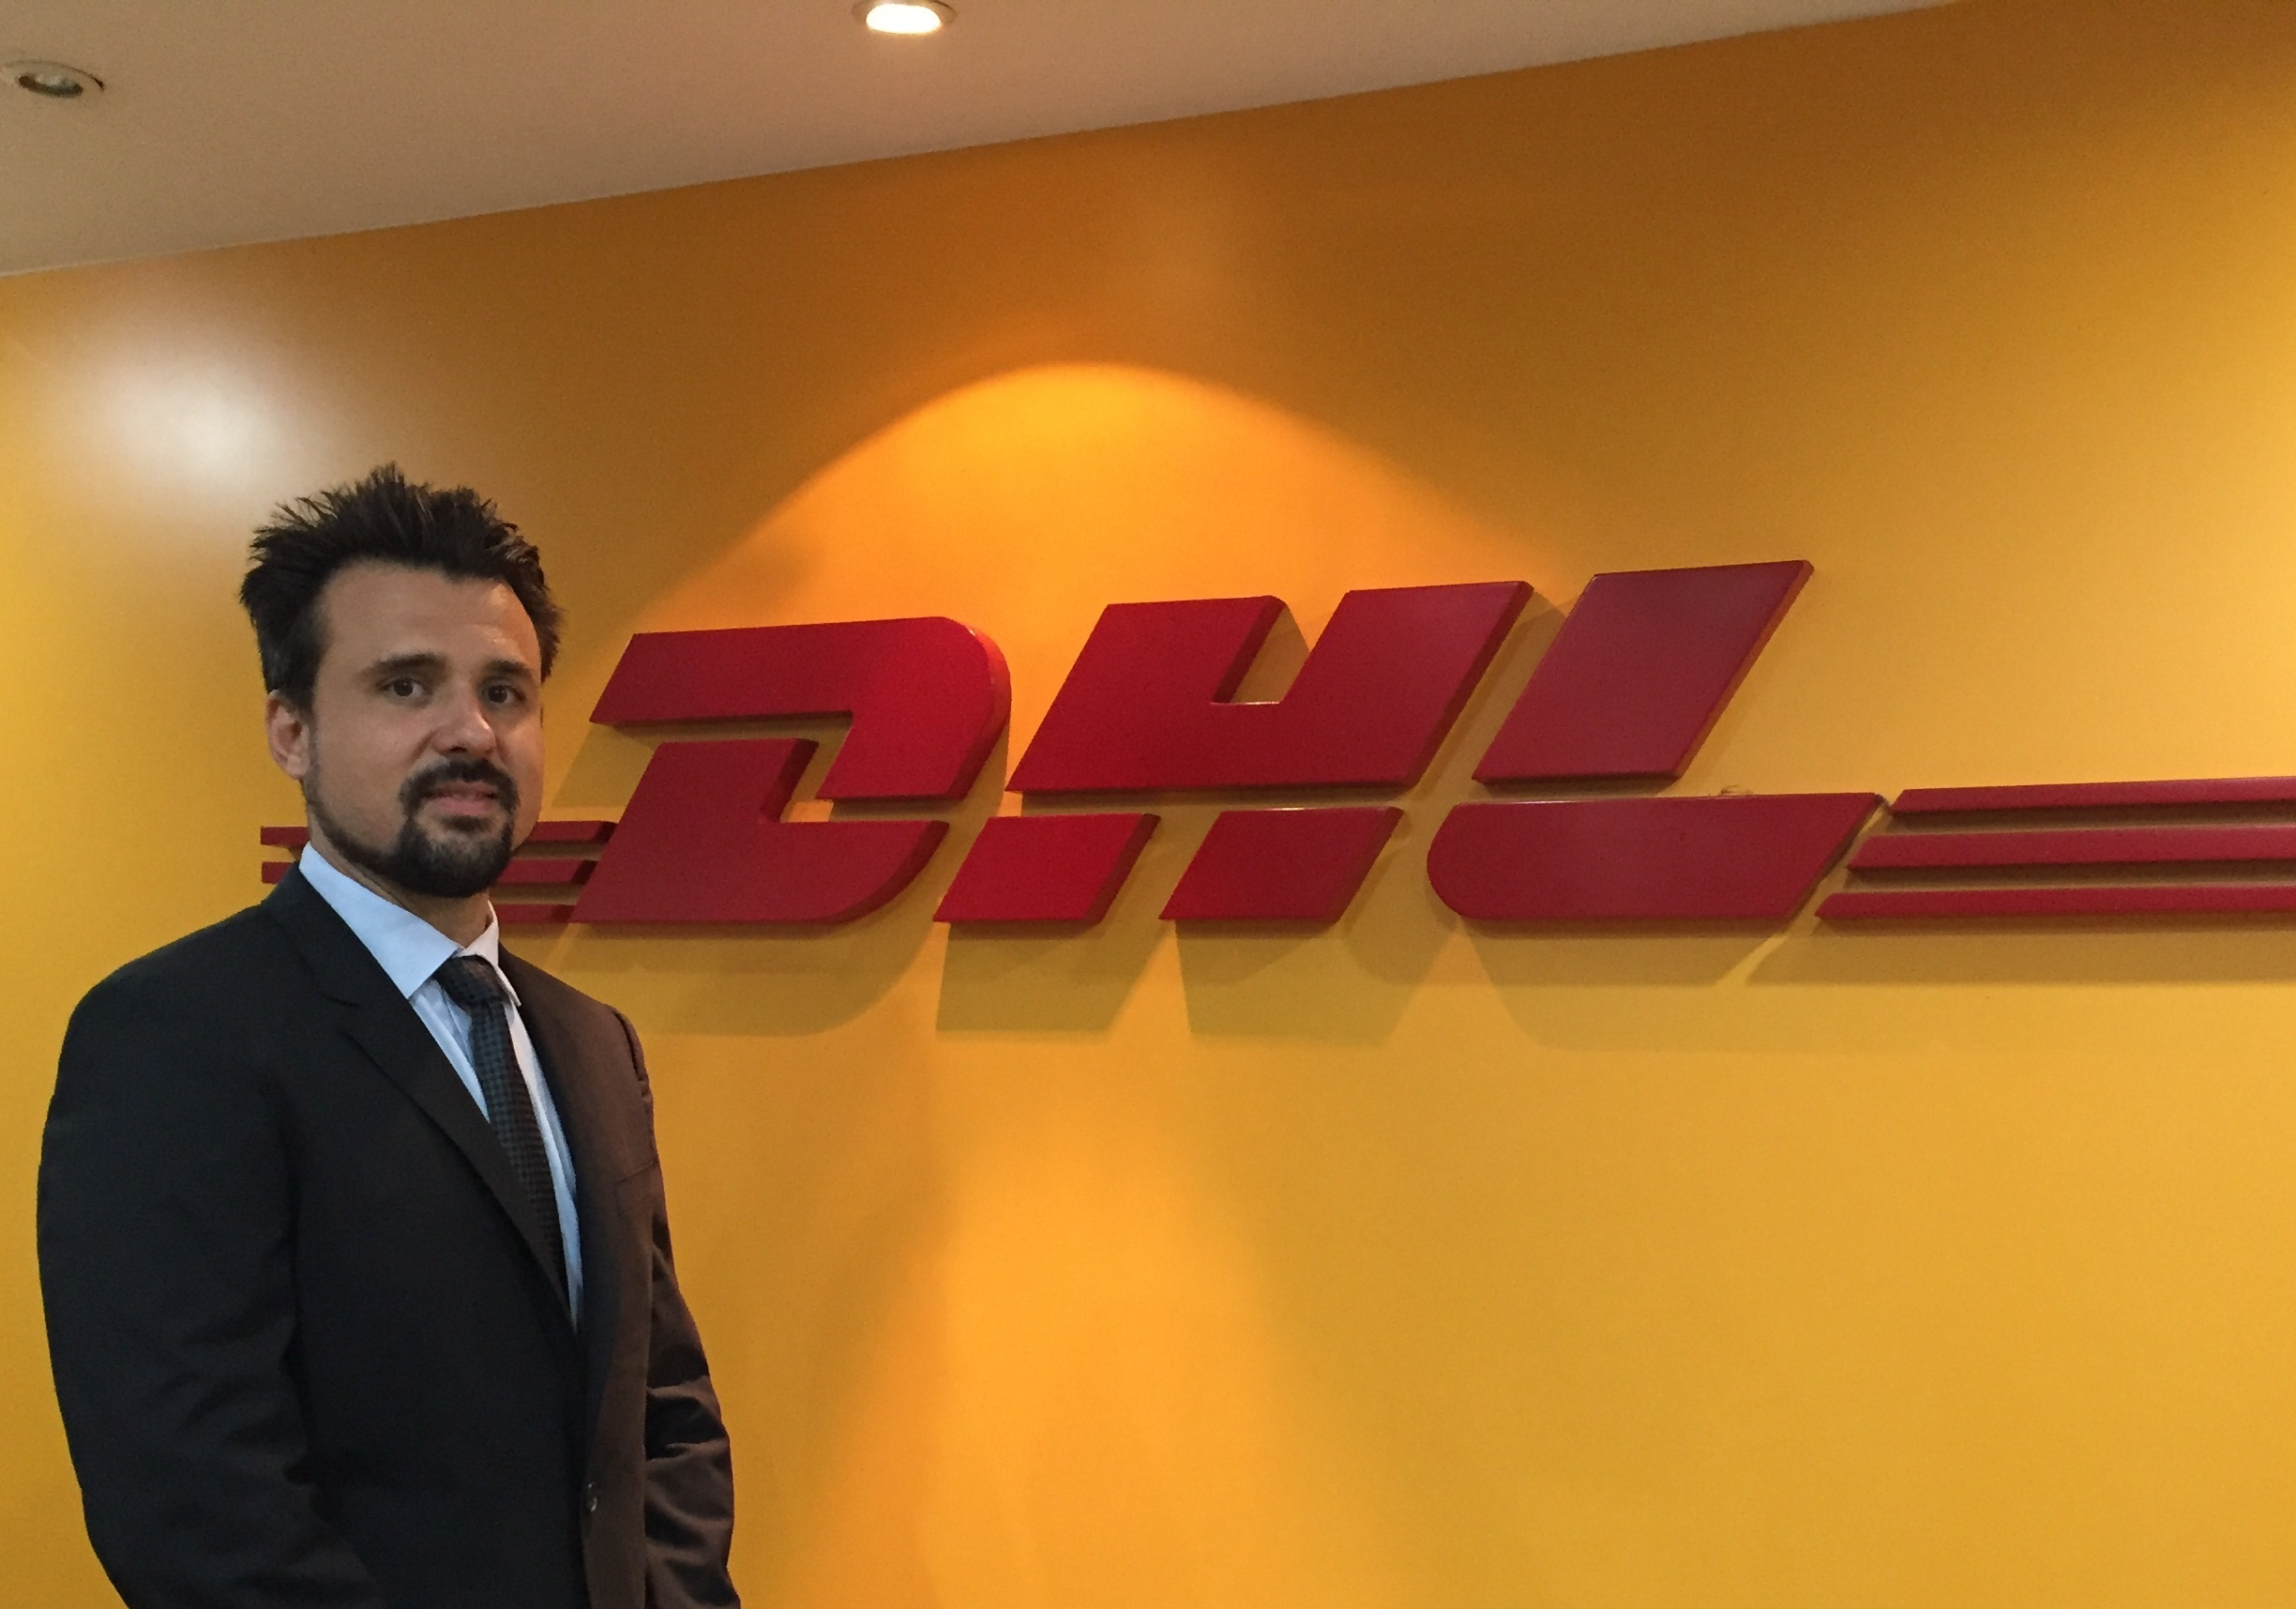 Clement Blanc, Managing Director, DHL Global Forwarding, South Africa